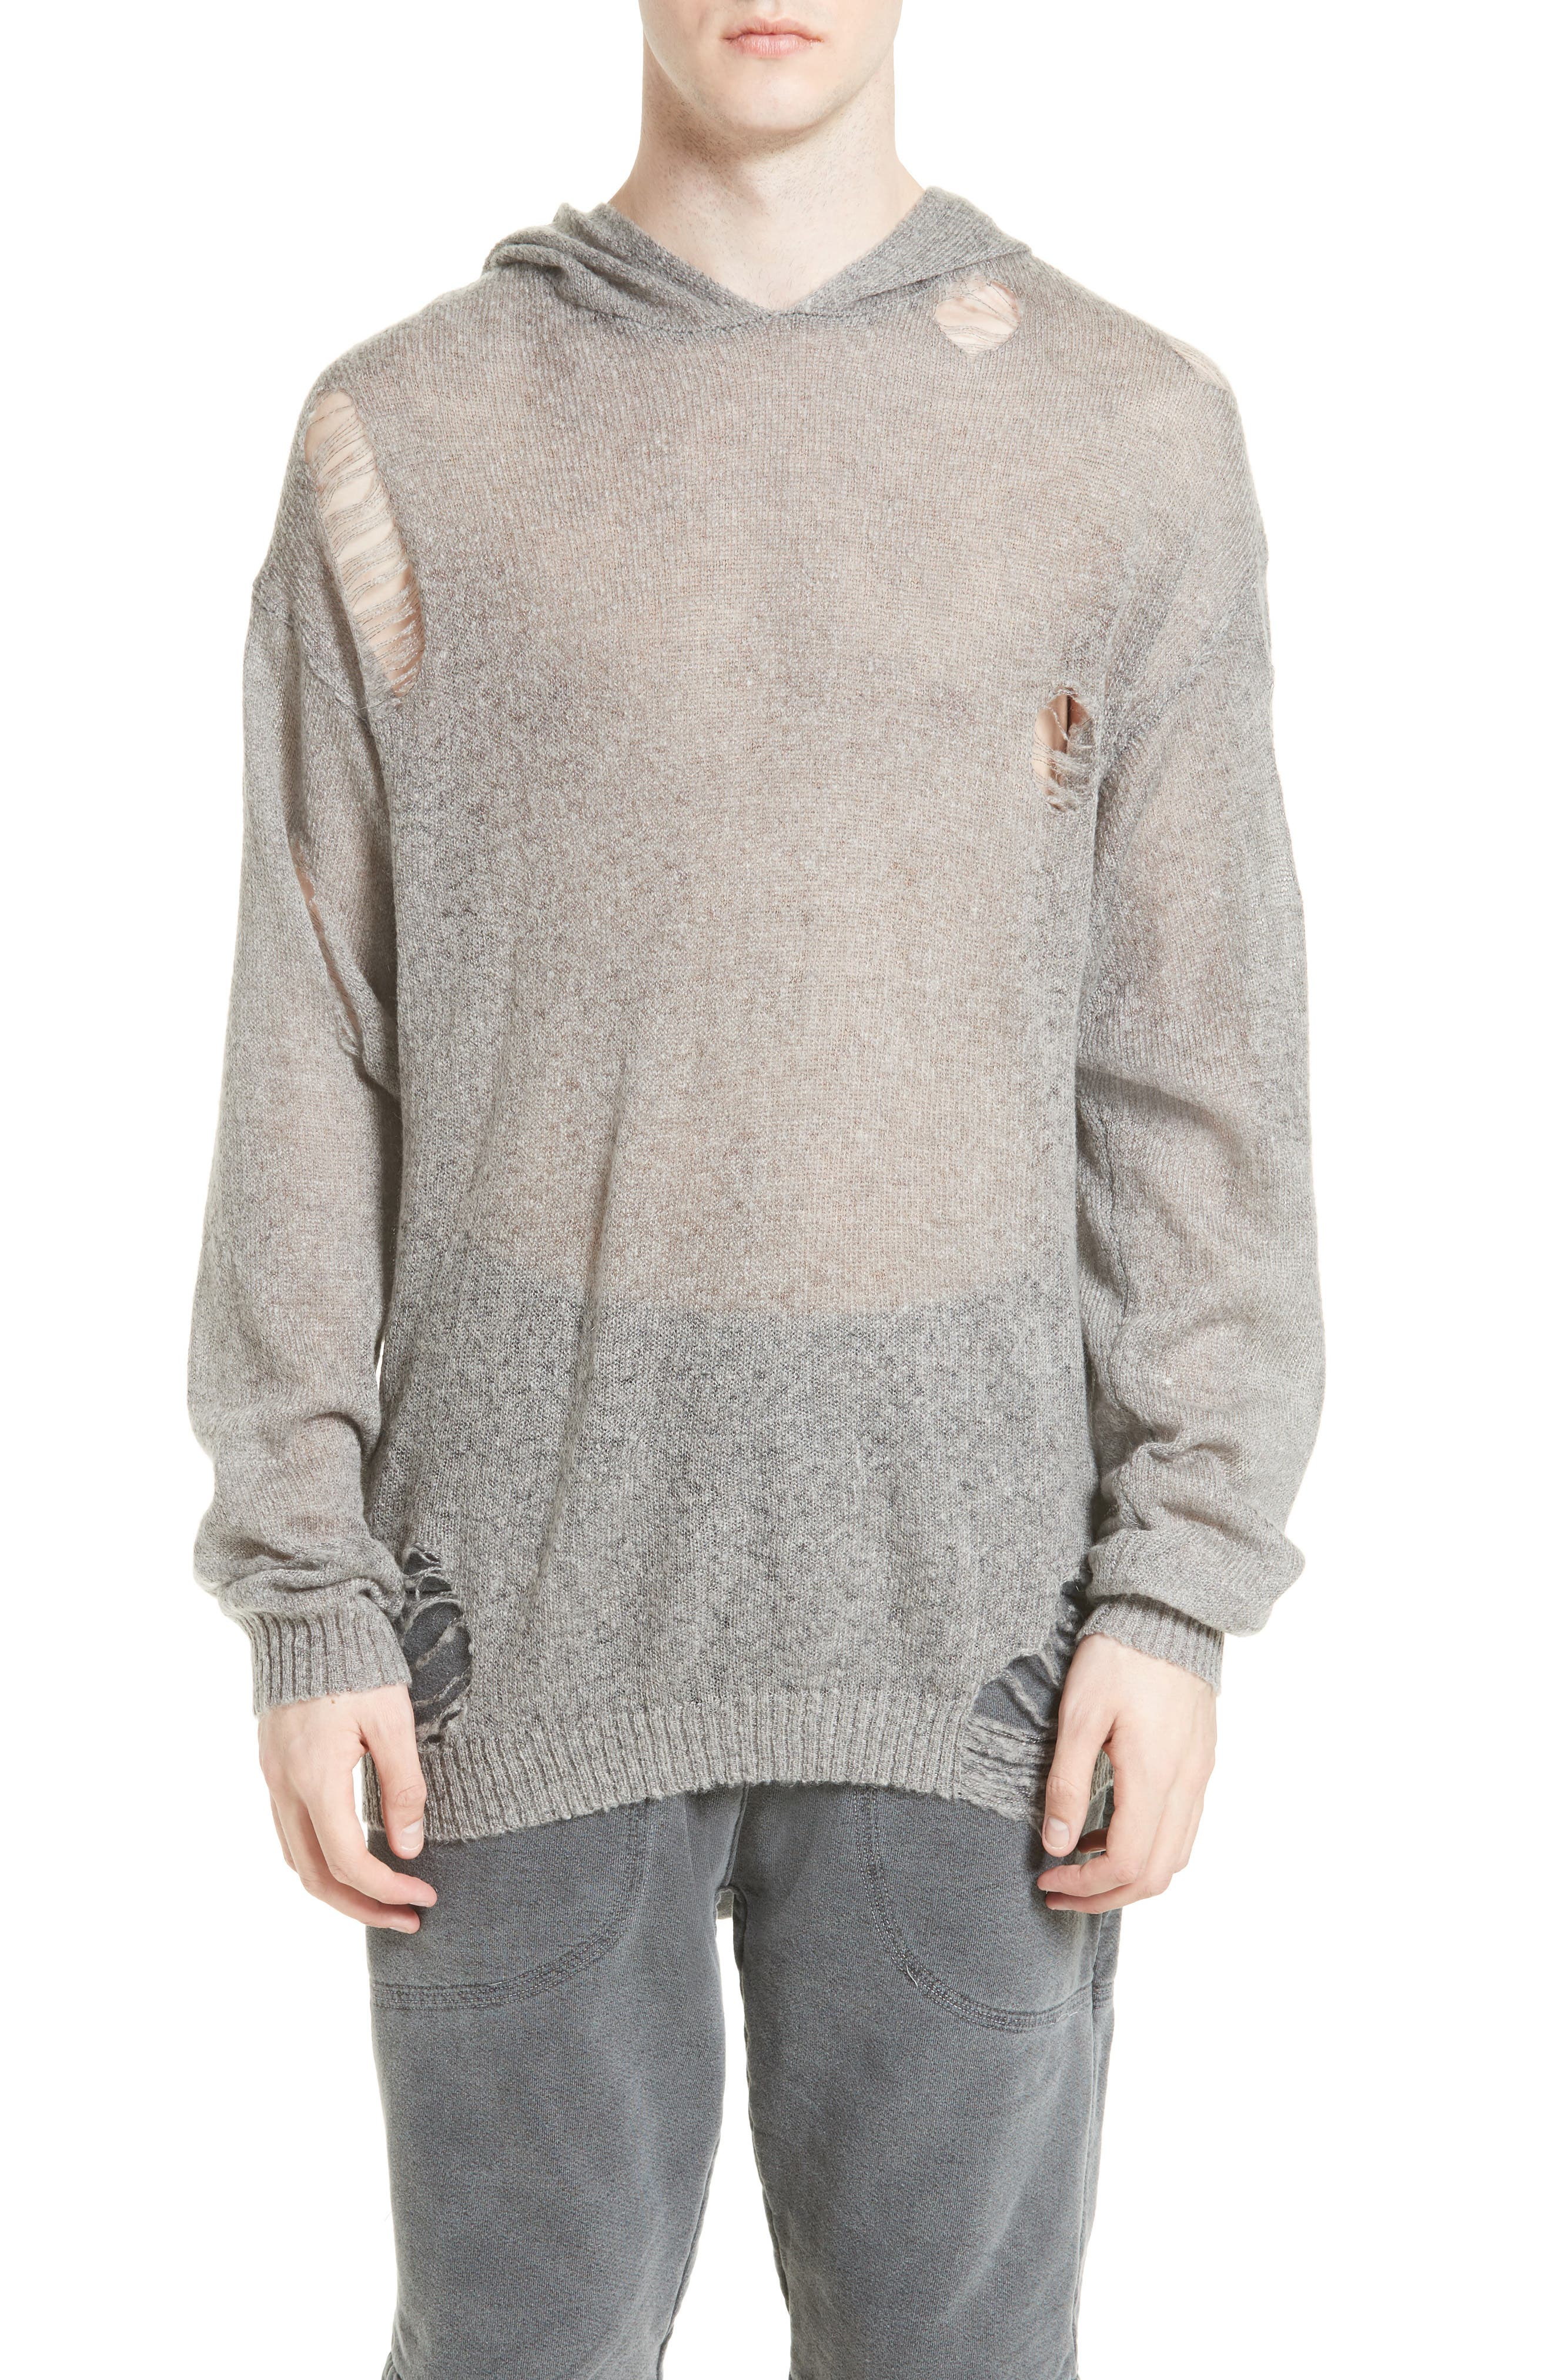 Drifter Odin Destroyed Hoodie Sweater